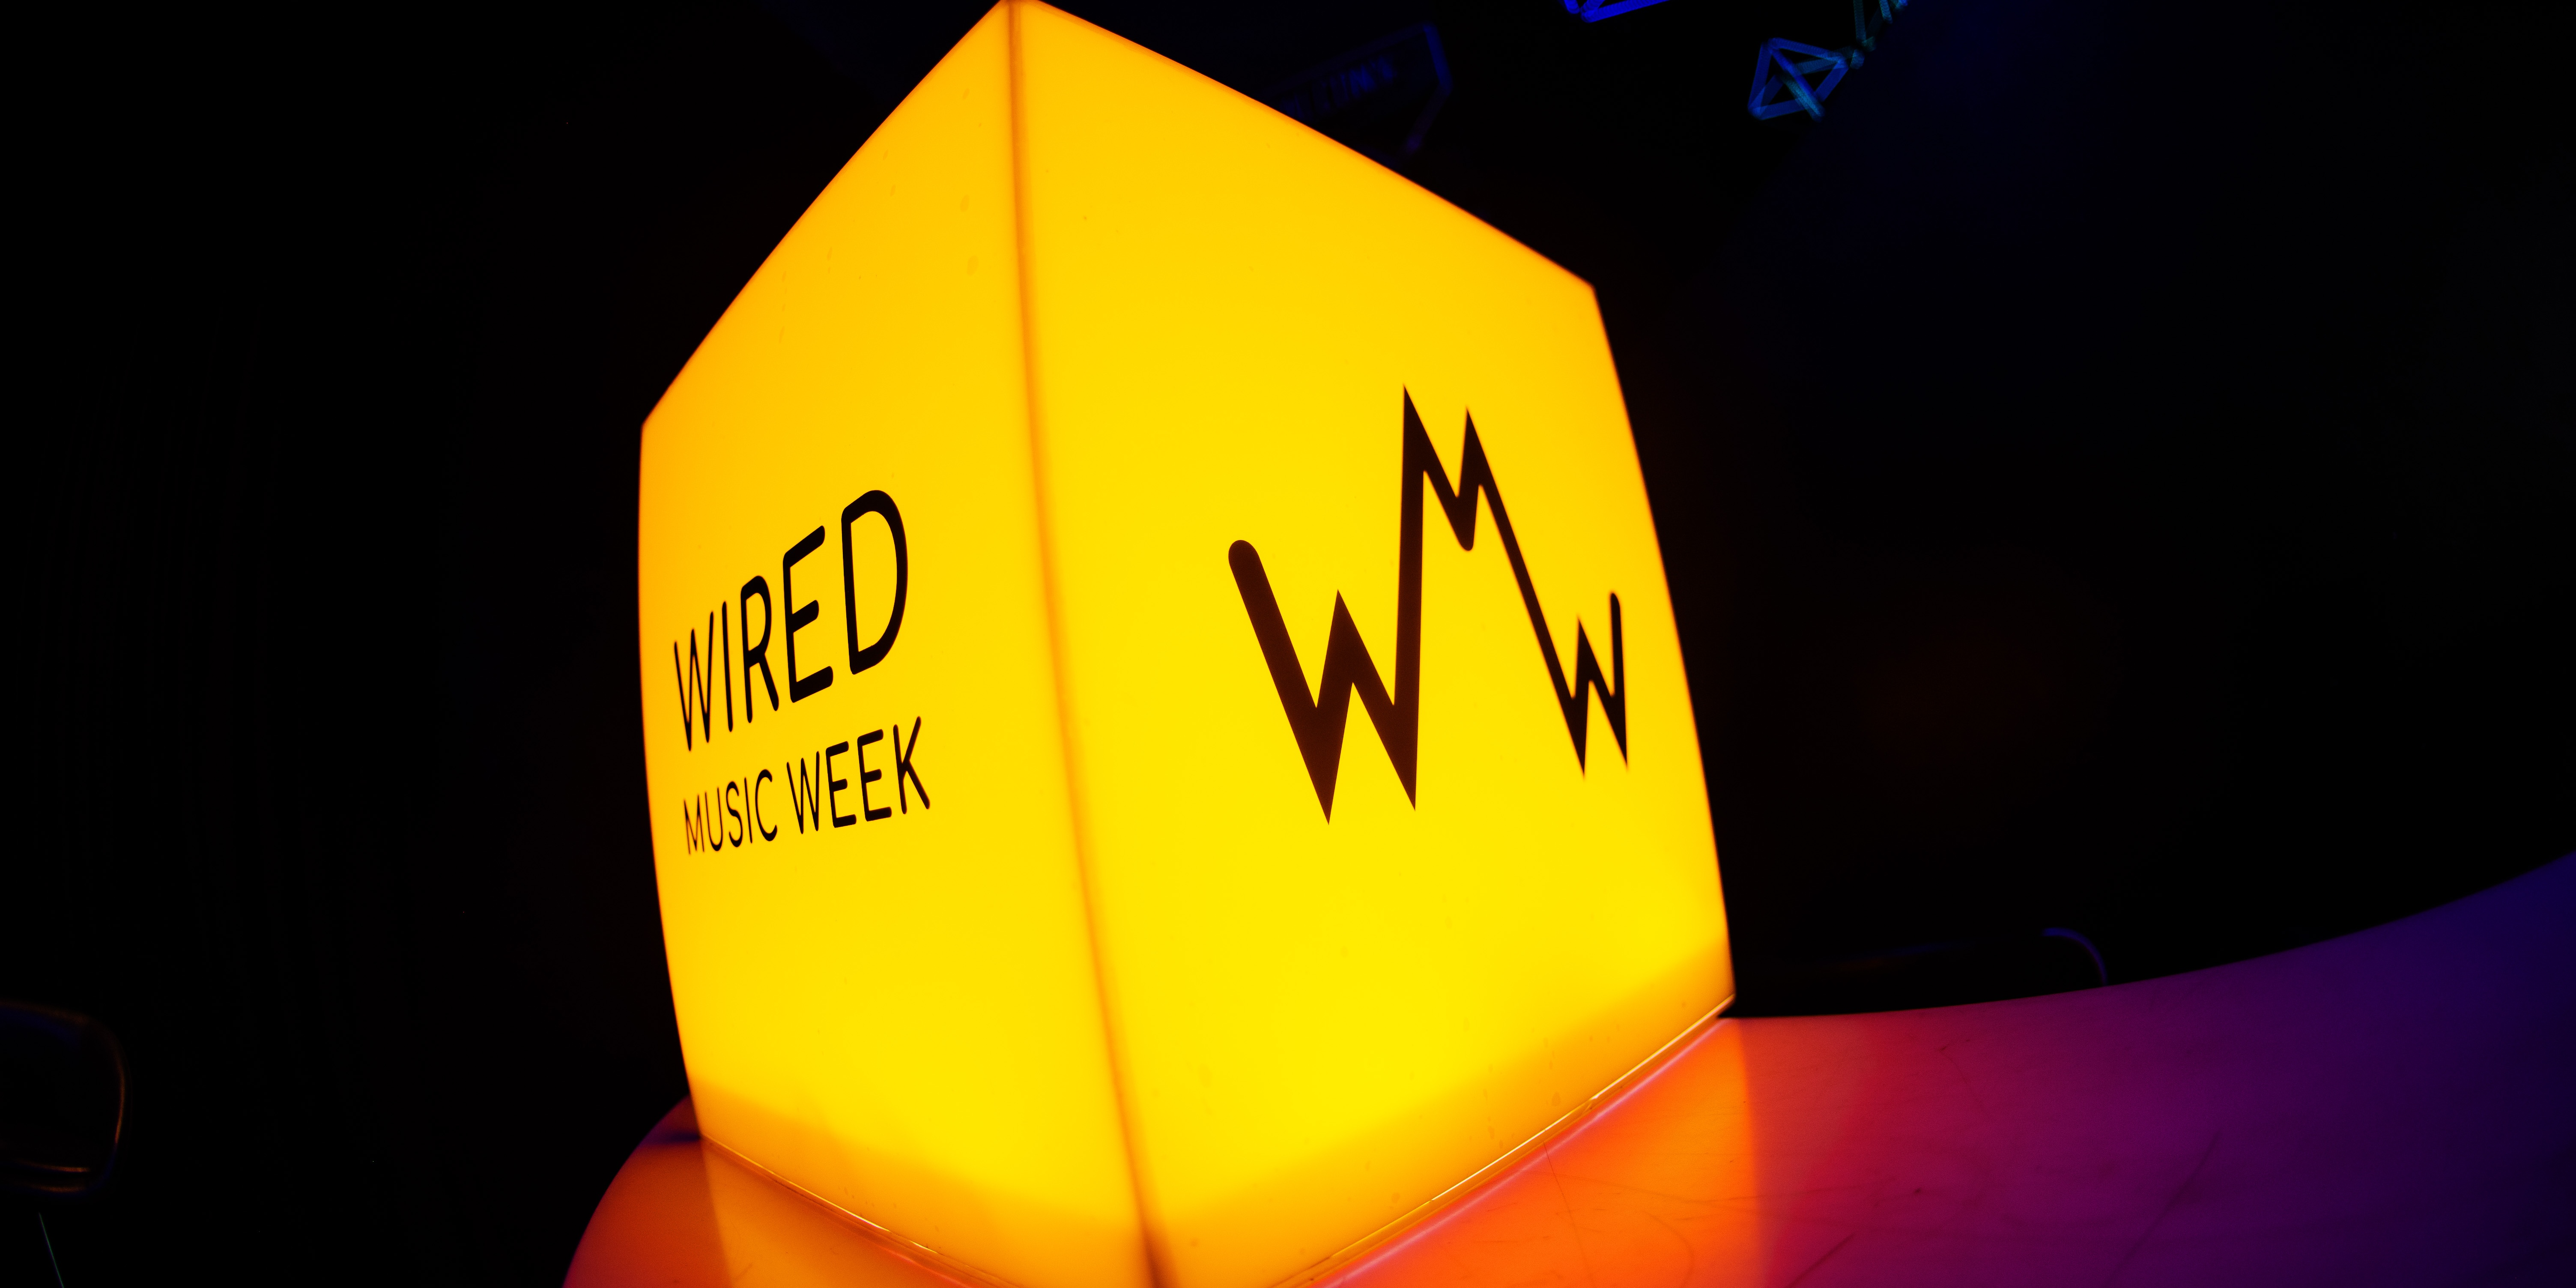 Wired Music Week announces partnership with Zouk Genting and elevated experiences for 2020 return